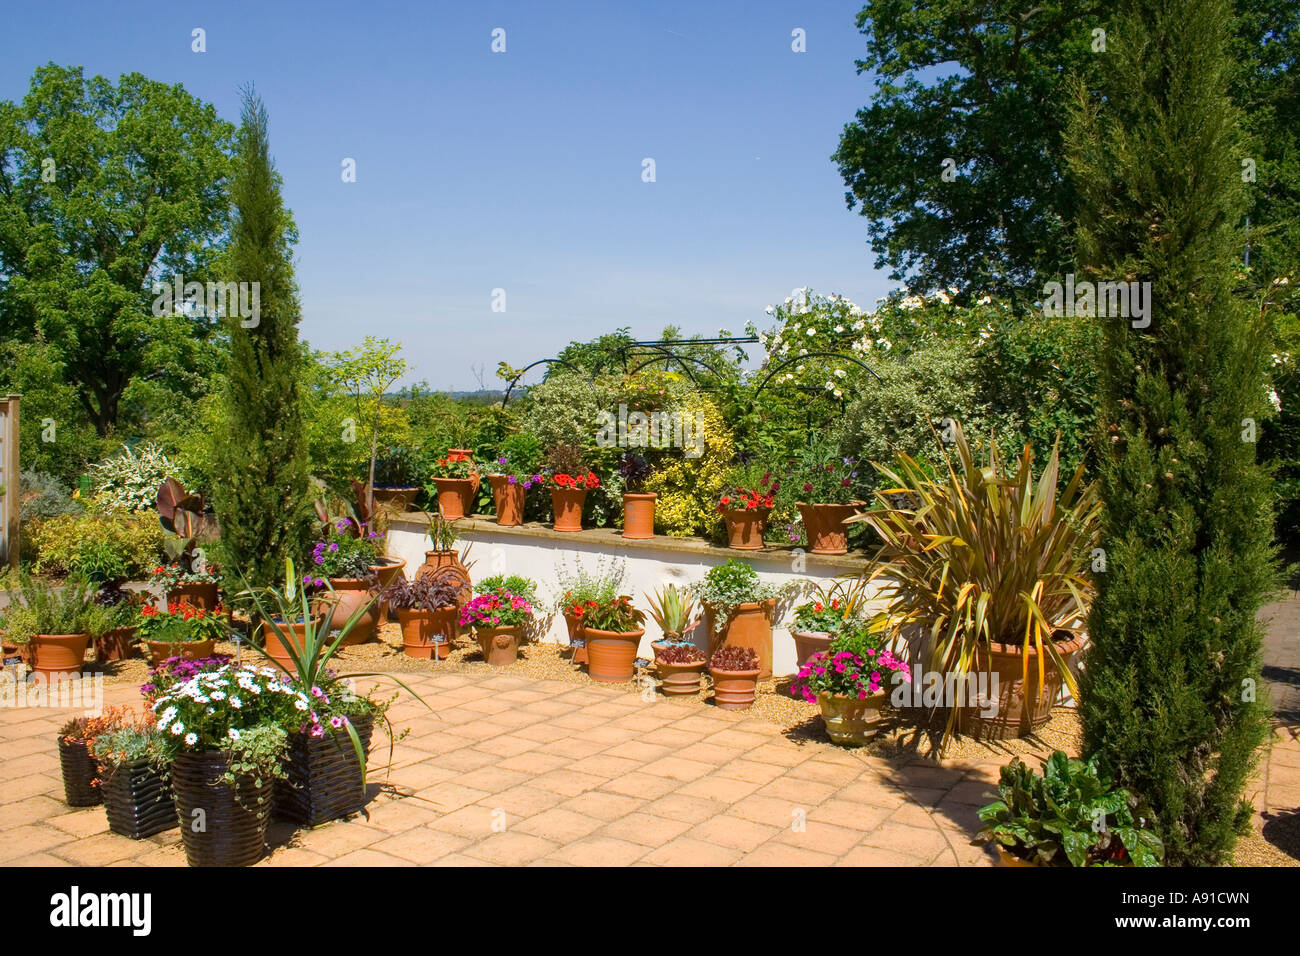 A terraced garden in the sun Stock Photo